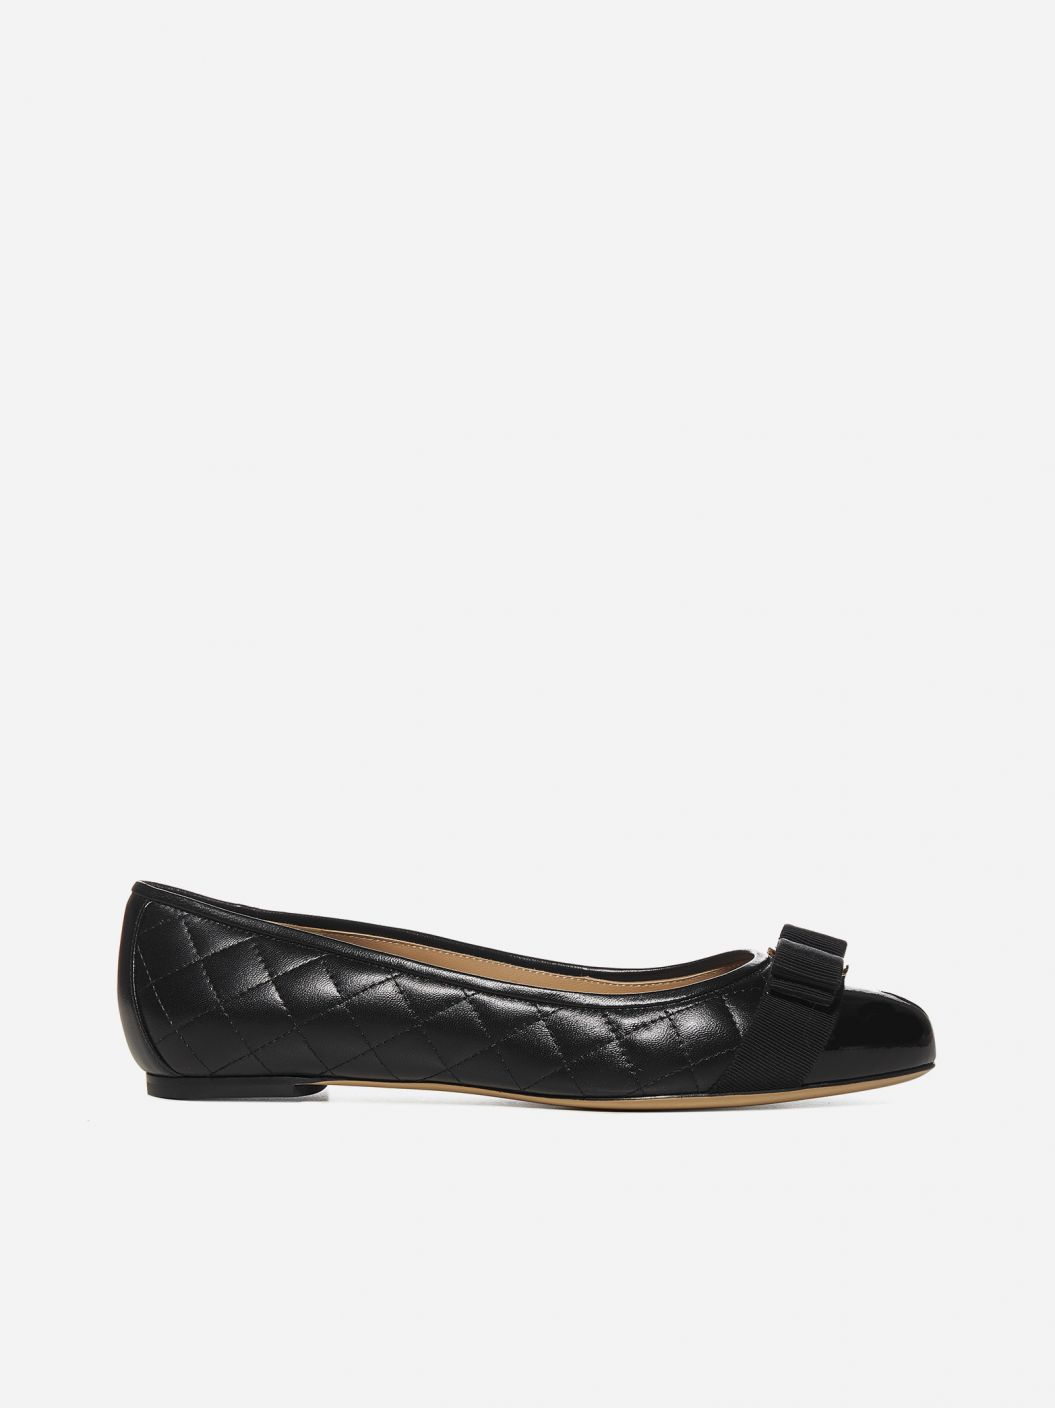 Varina quilted nappa leather ballet flats